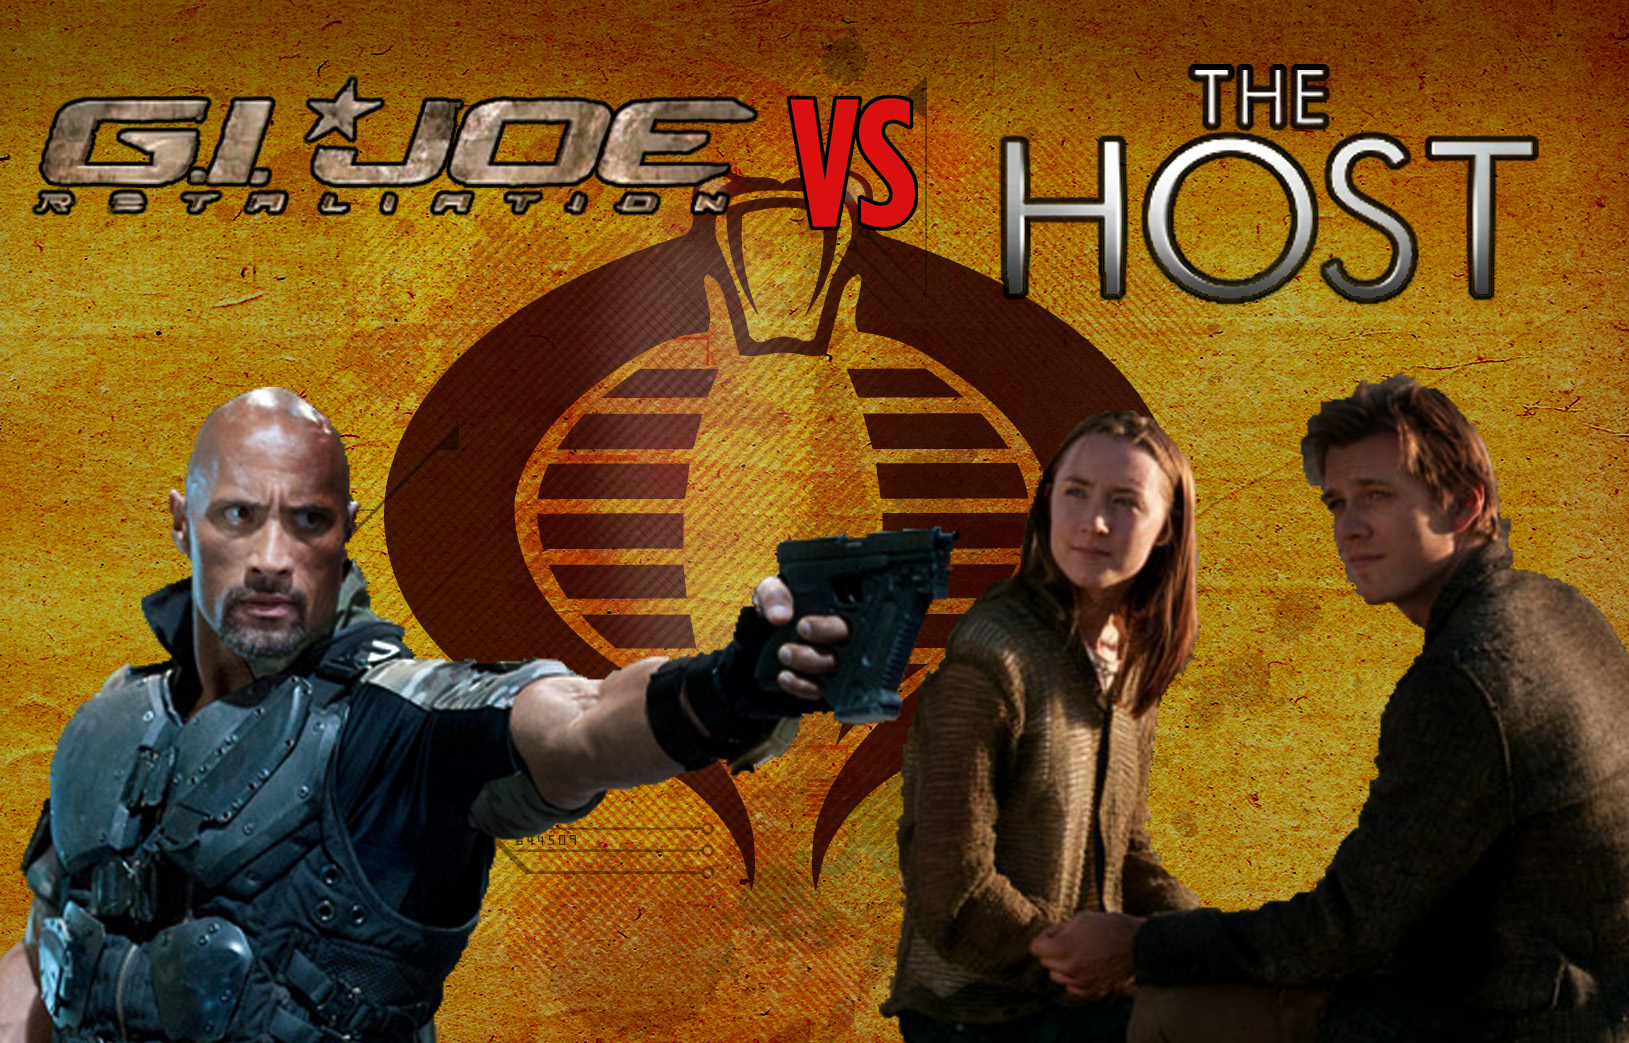 GI Joe: Retaliation vs The Host